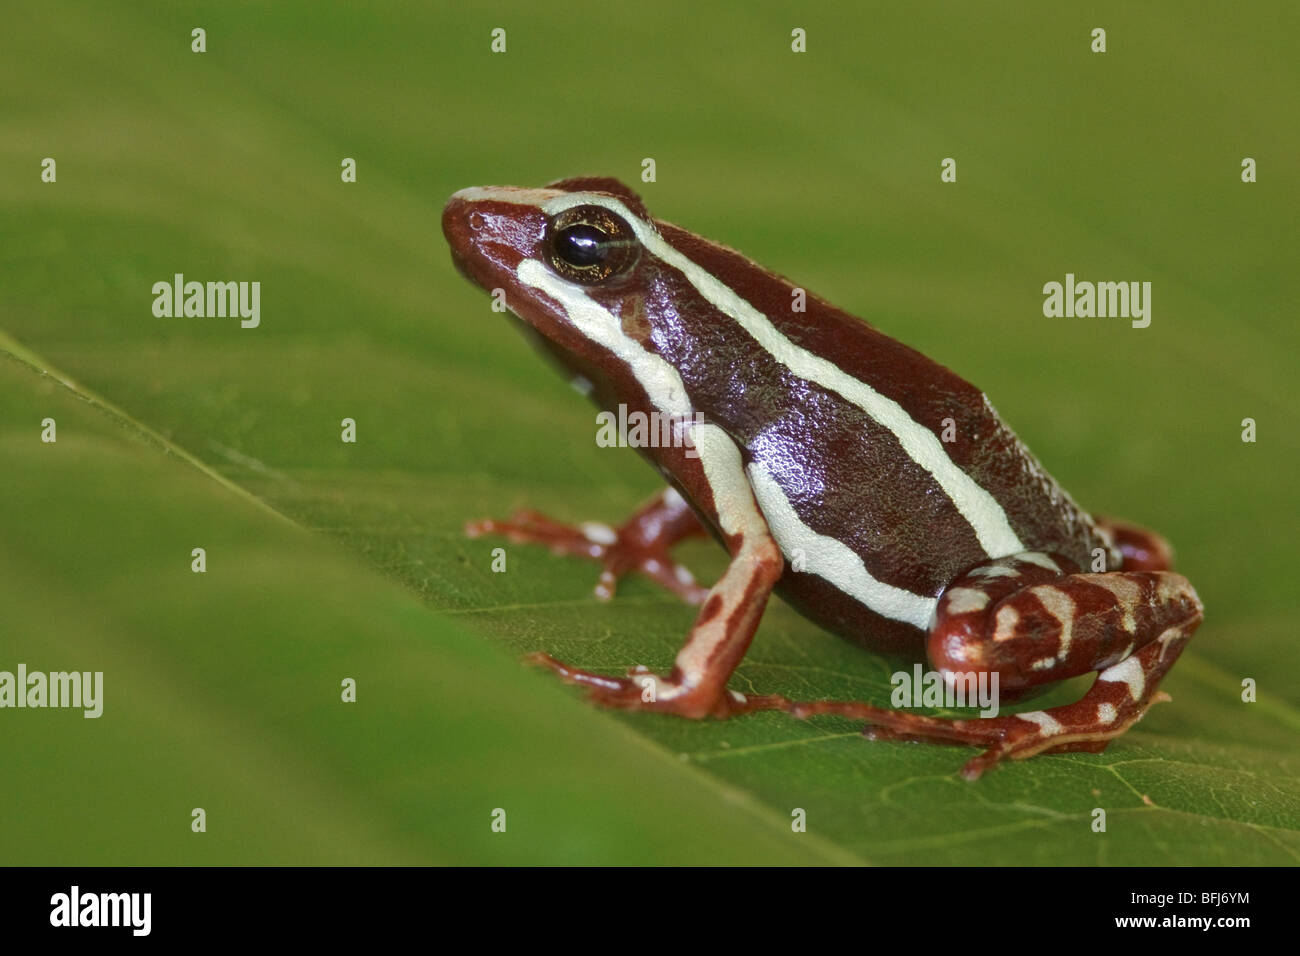 A frog perched on a leaf at Buenaventura Lodge in southwest Ecuador. - Stock Image